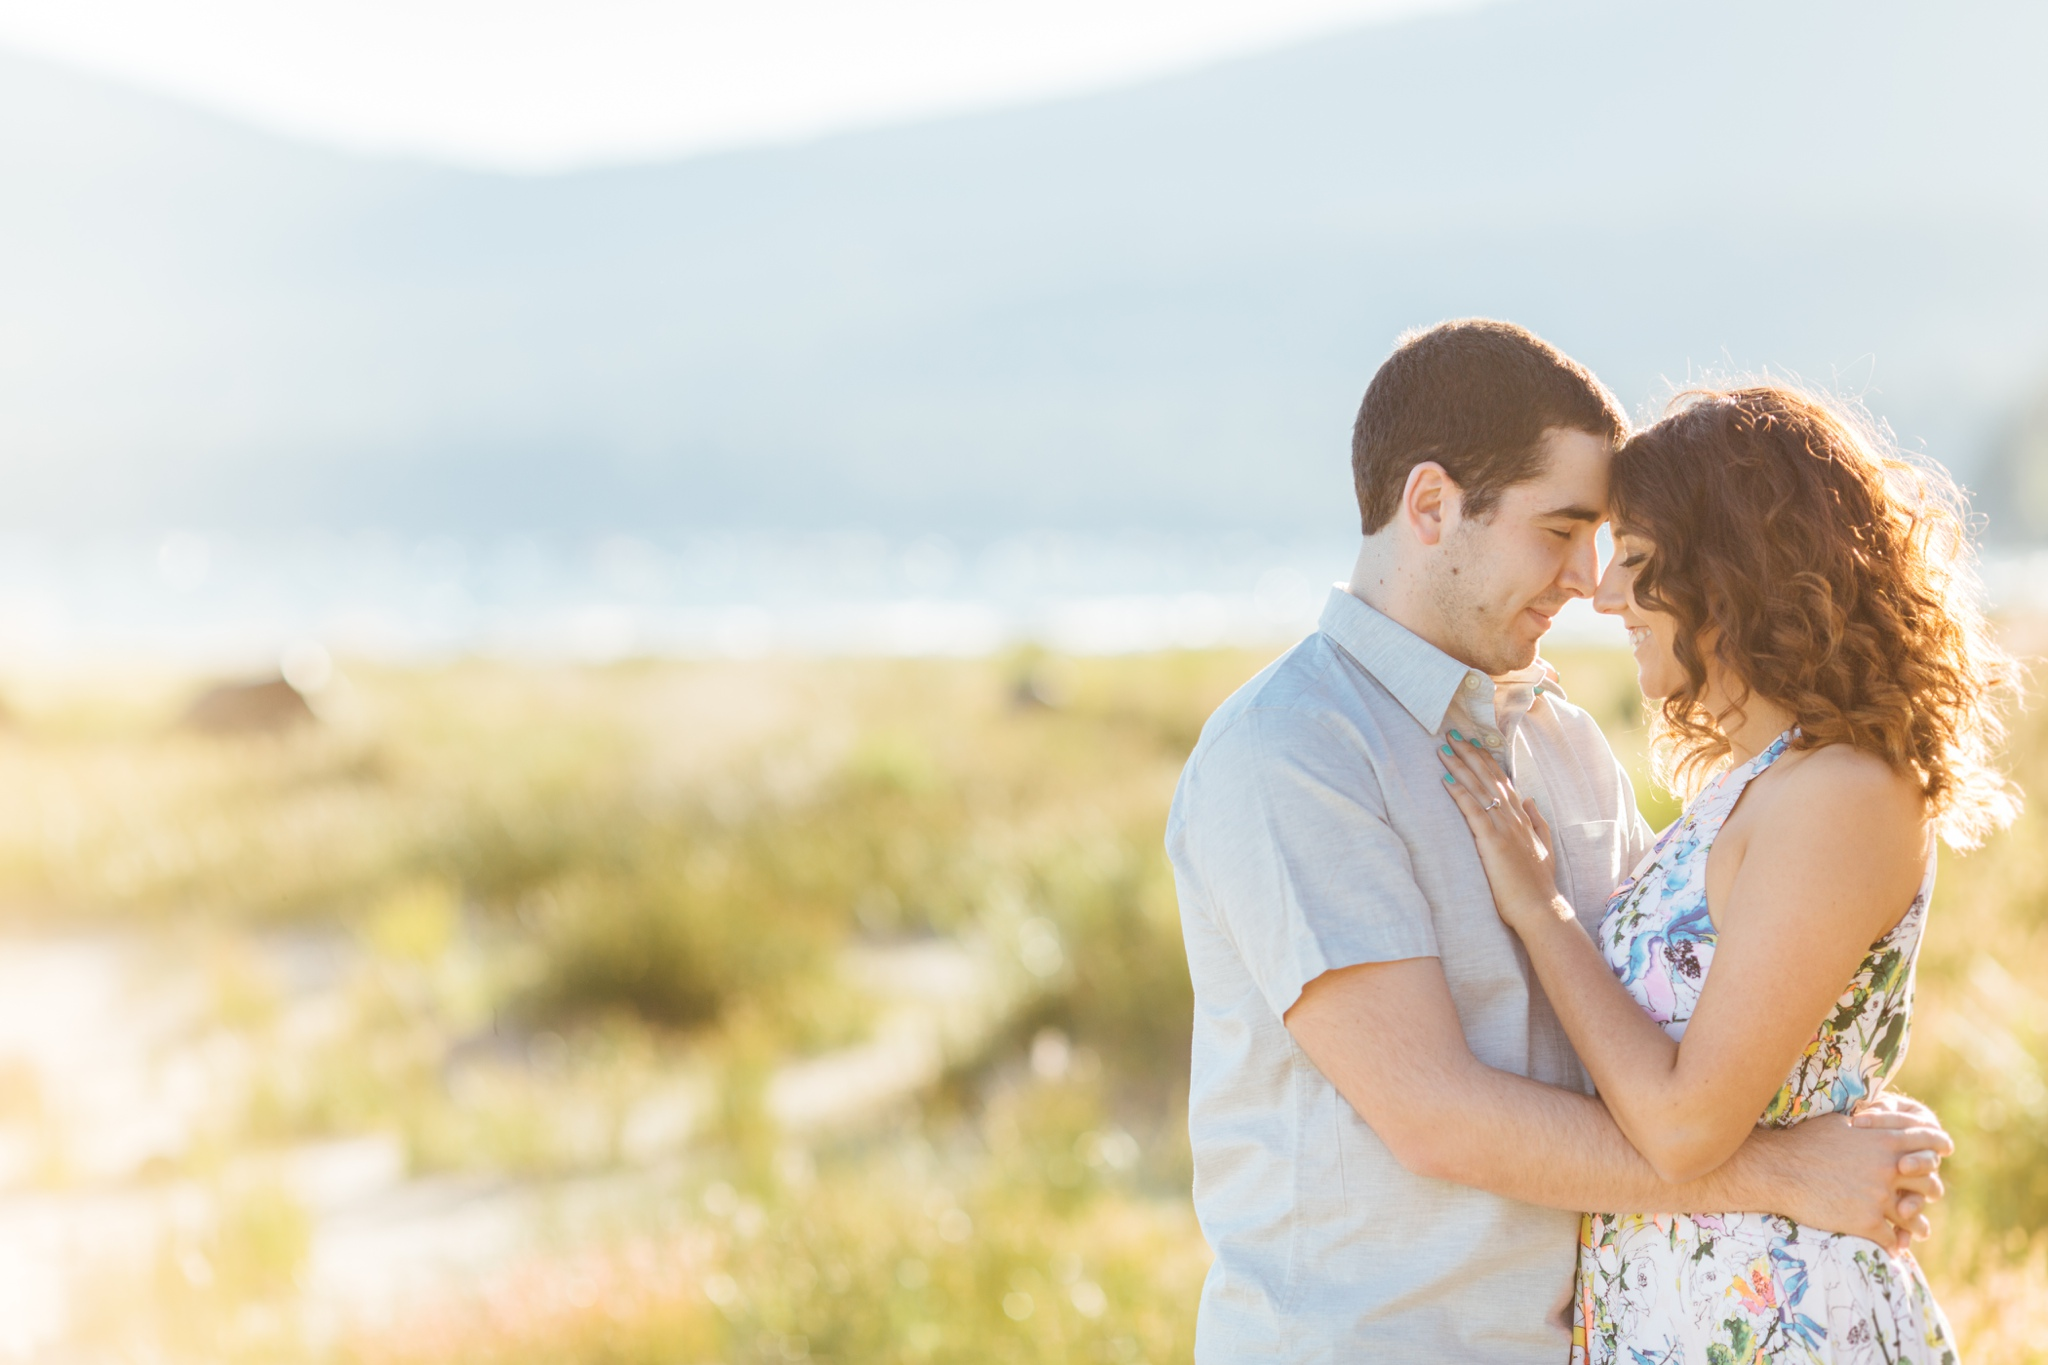 thedelauras_ostaraphotography_laketahoeengagement_laketahoeweddingphotograph_laketahoe_photographer_012